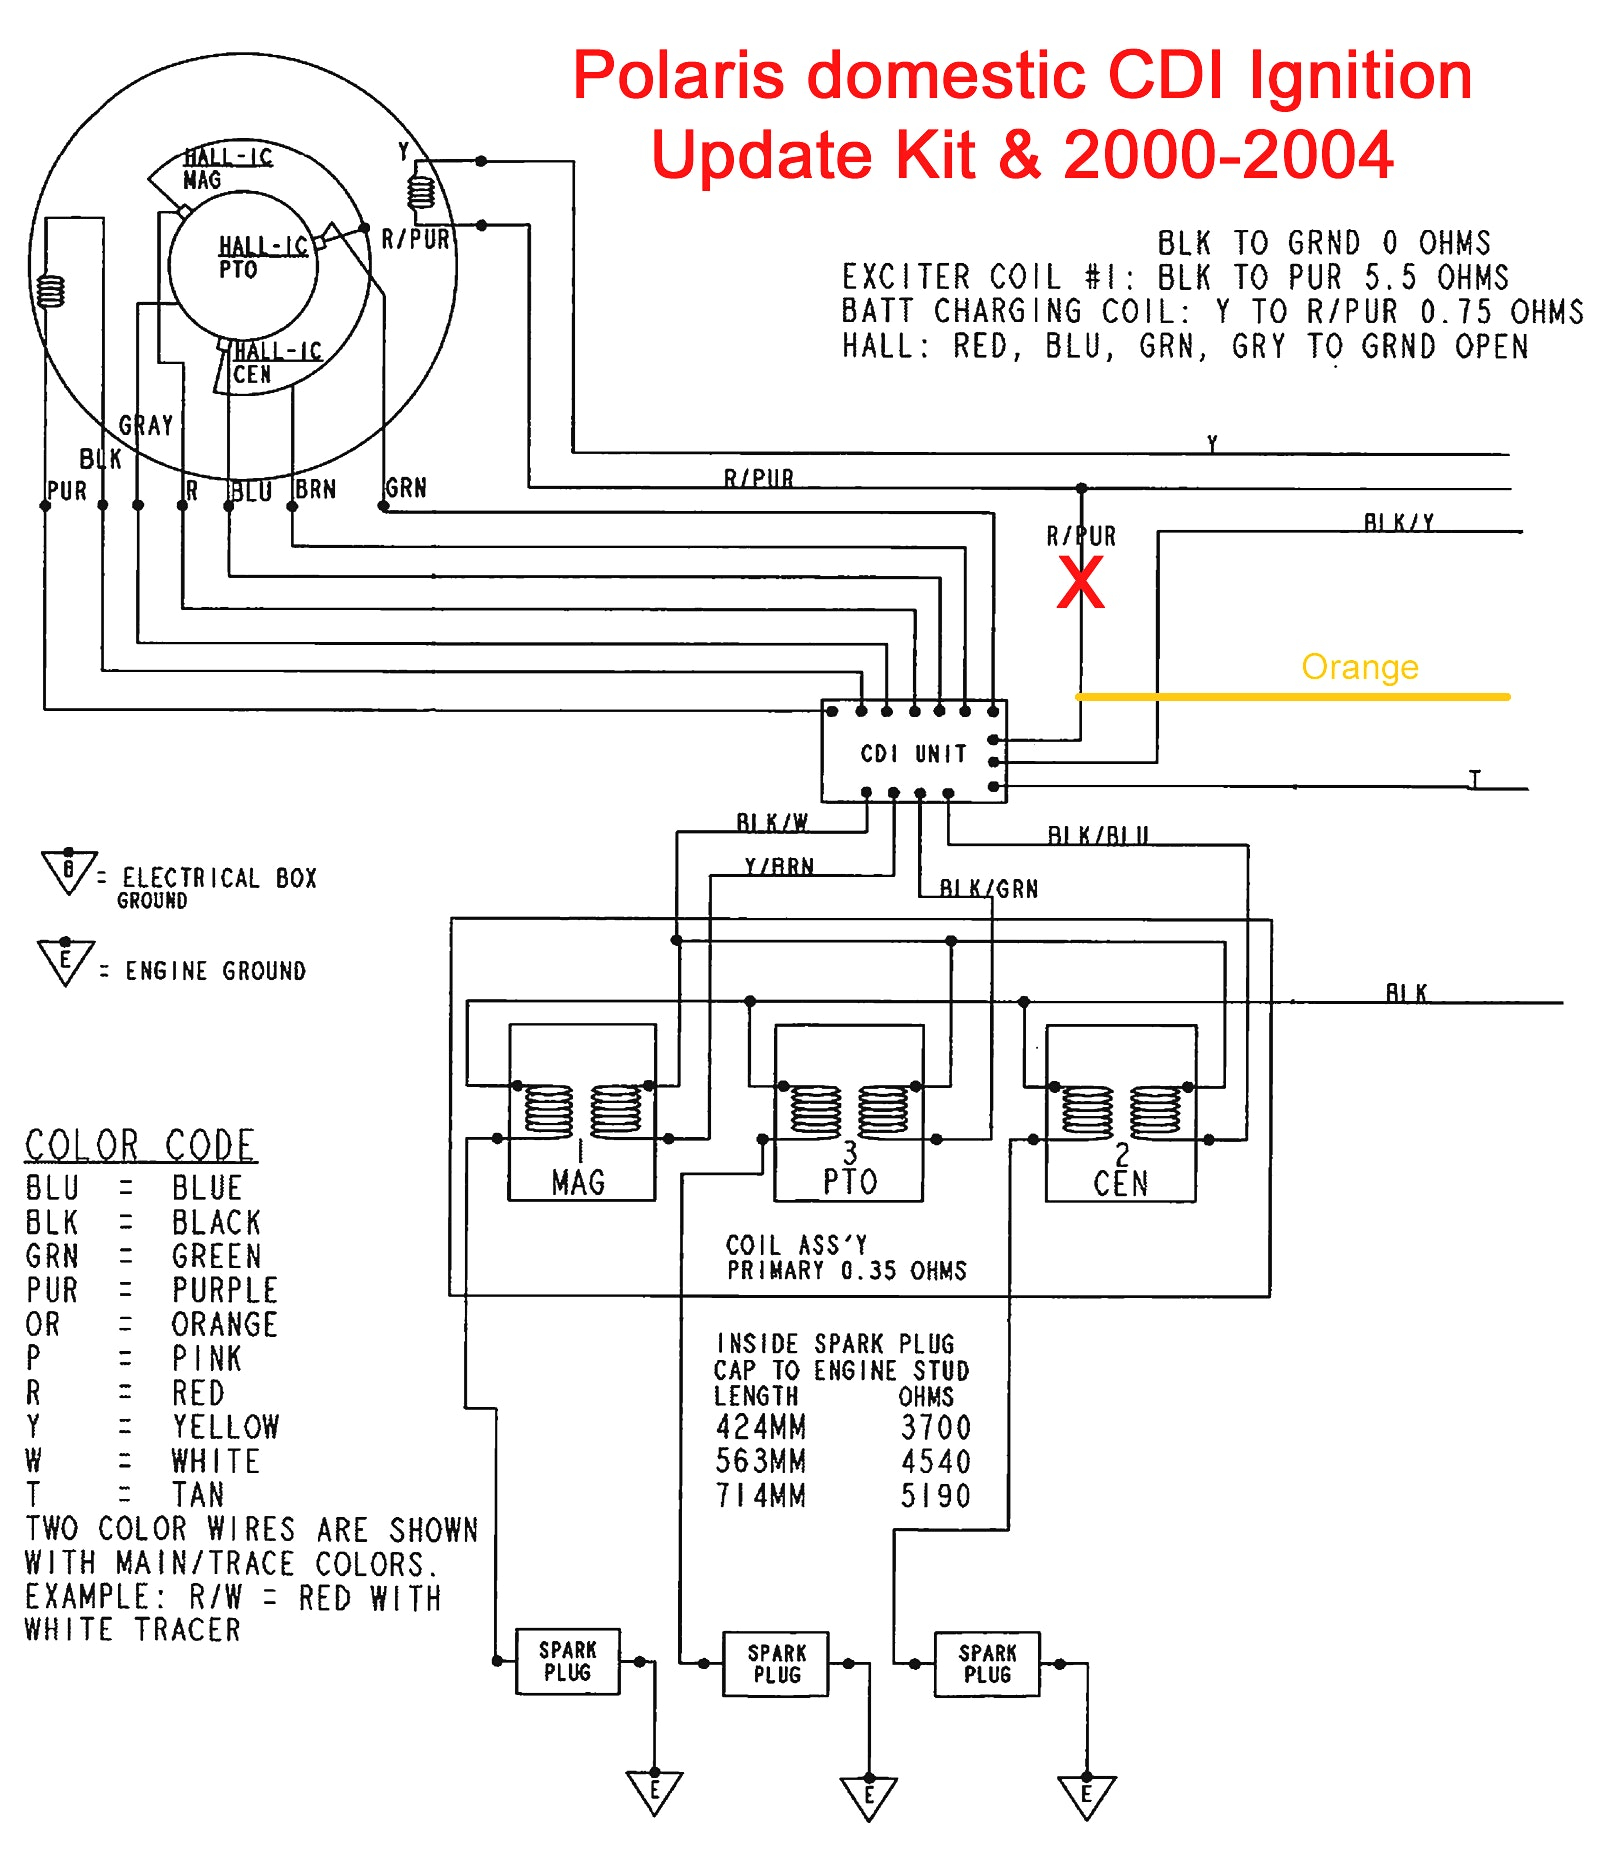 boss plow controller wiring diagram Collection-Boss Plow Wiring Diagram Inspiration Boss Plow Wiring Diagram V Joystick Inside Western Controller and 7-j